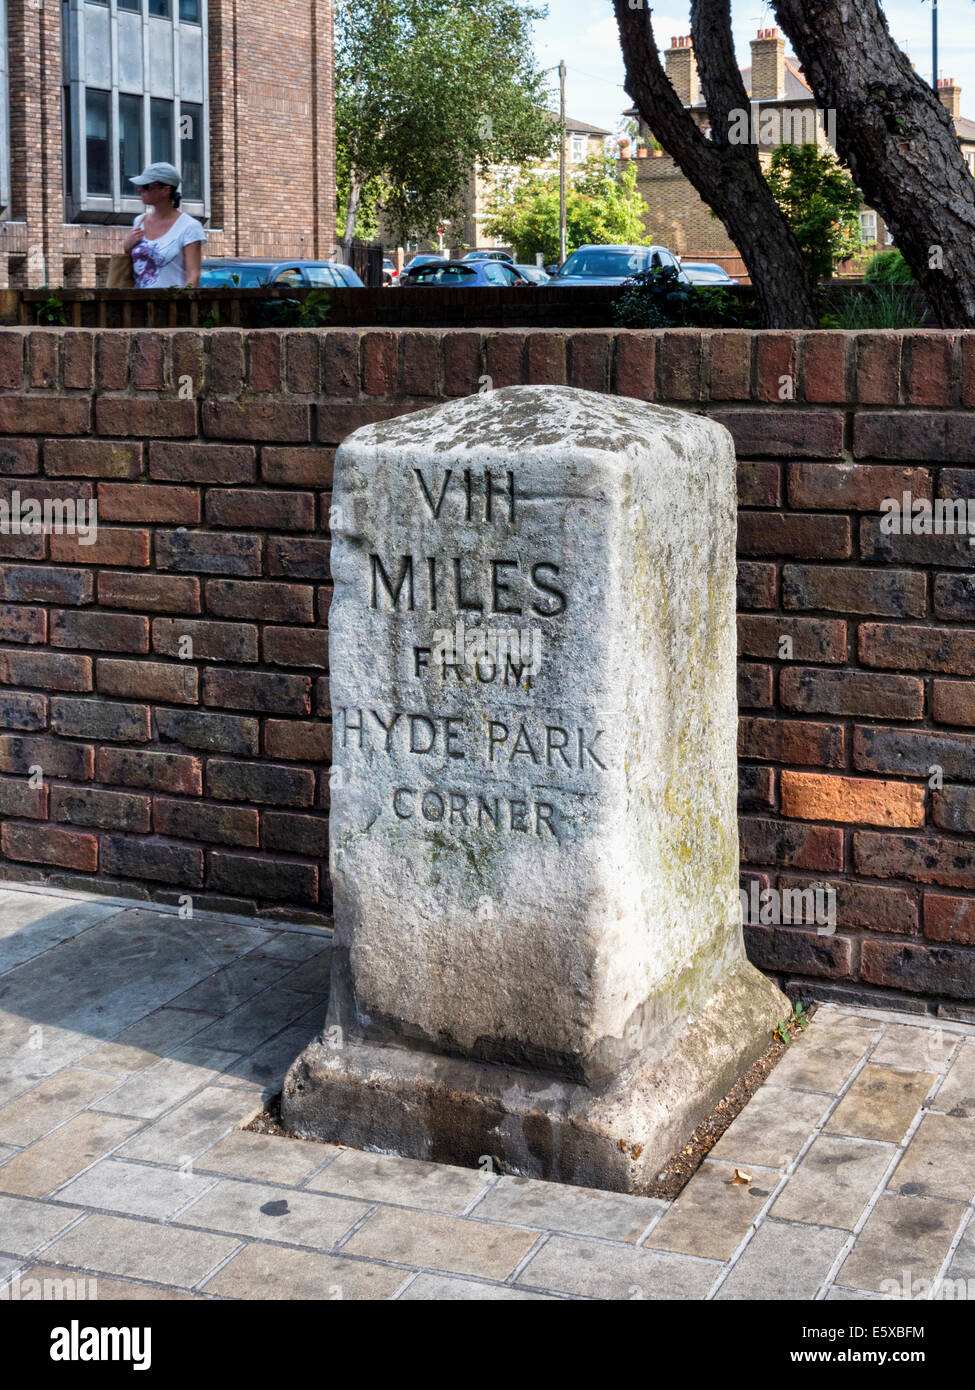 Richmond upon Thames, Surrey, London TW9 - Weathered old milestone with 'Vlll Miles from Hyde Park Corner Inscription' - Stock Image